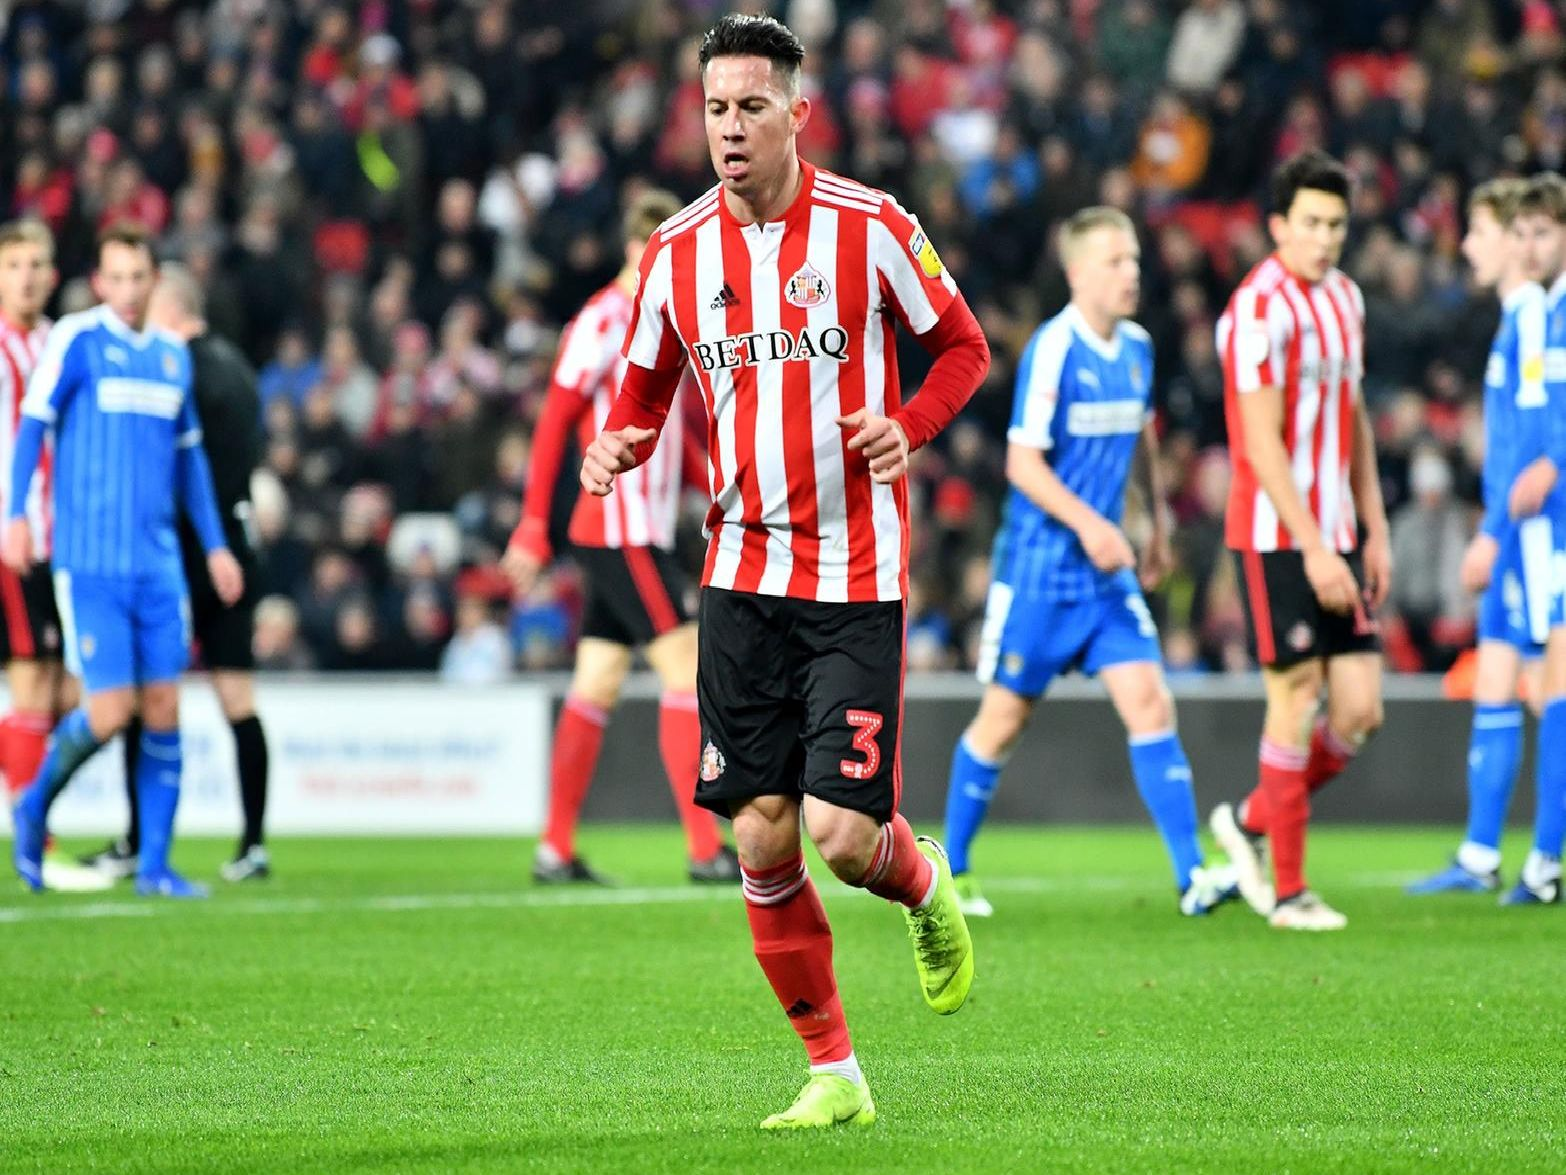 Bryan Oviedo was forced off with an injury against Shrewsbury.